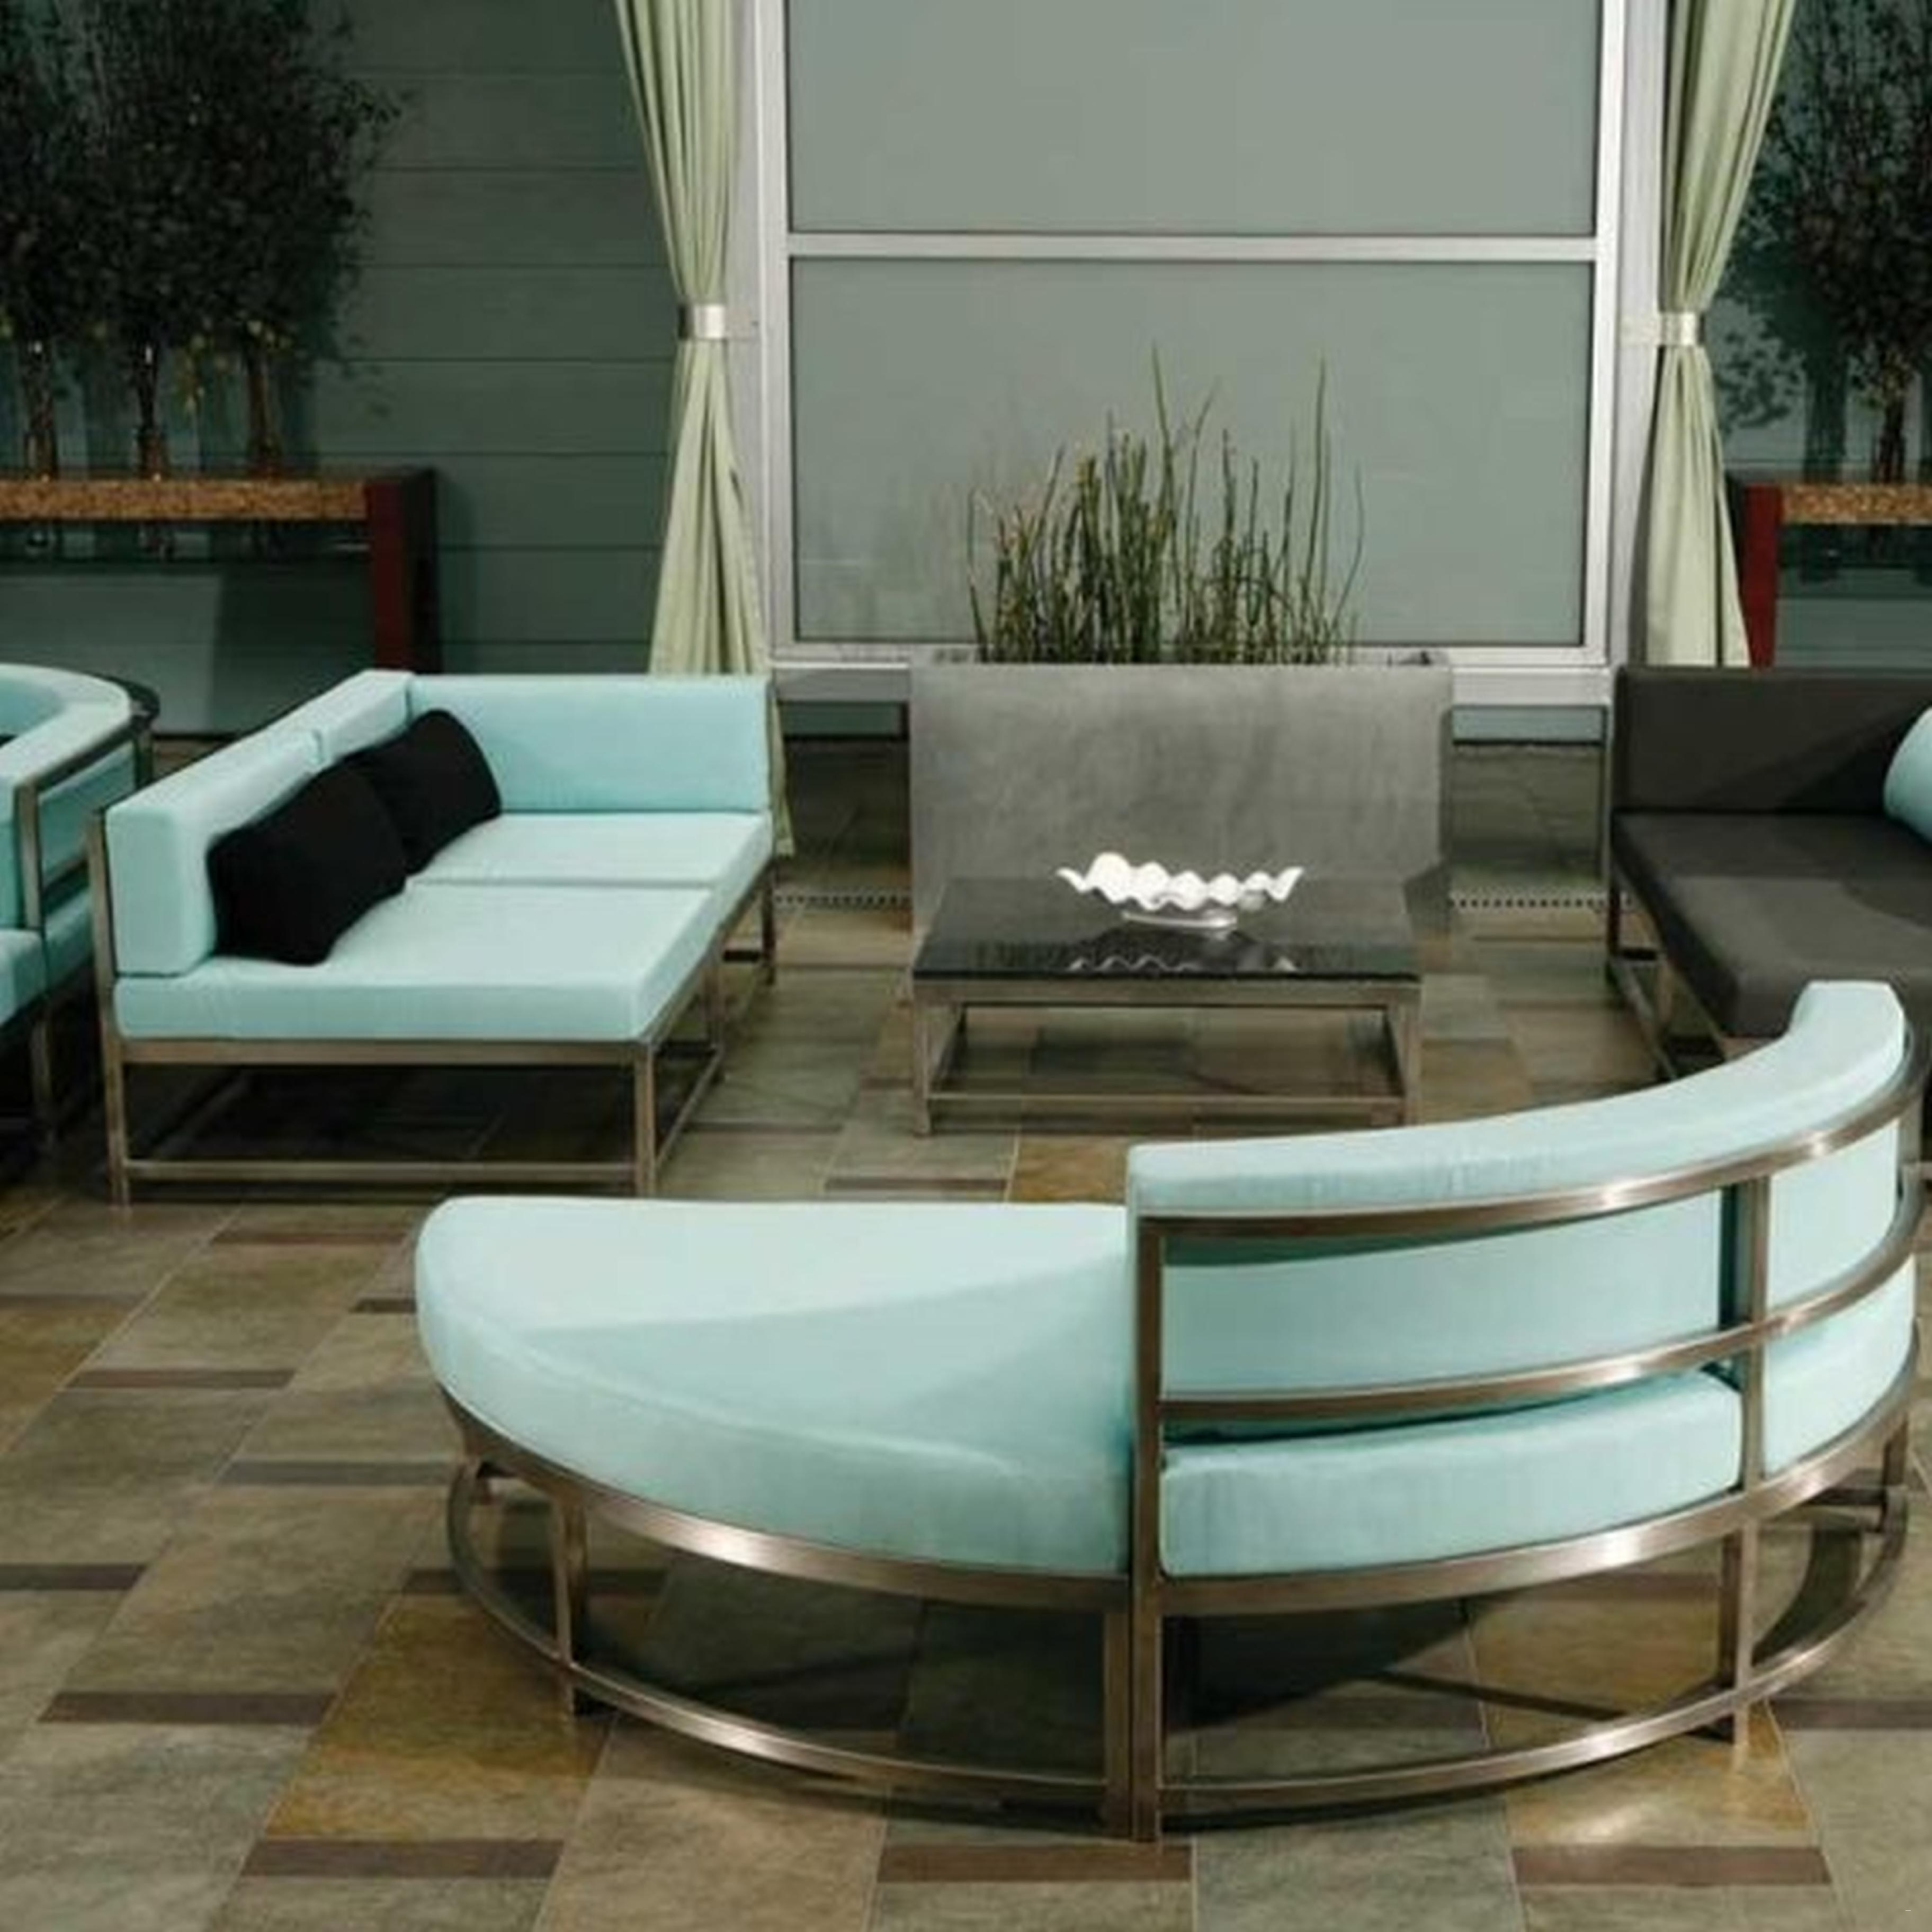 Well Liked Patio Conversation Sets At Home Depot Regarding Patio Furniture Covers Home Depot – Fabulous Home Depot Patio (View 15 of 20)